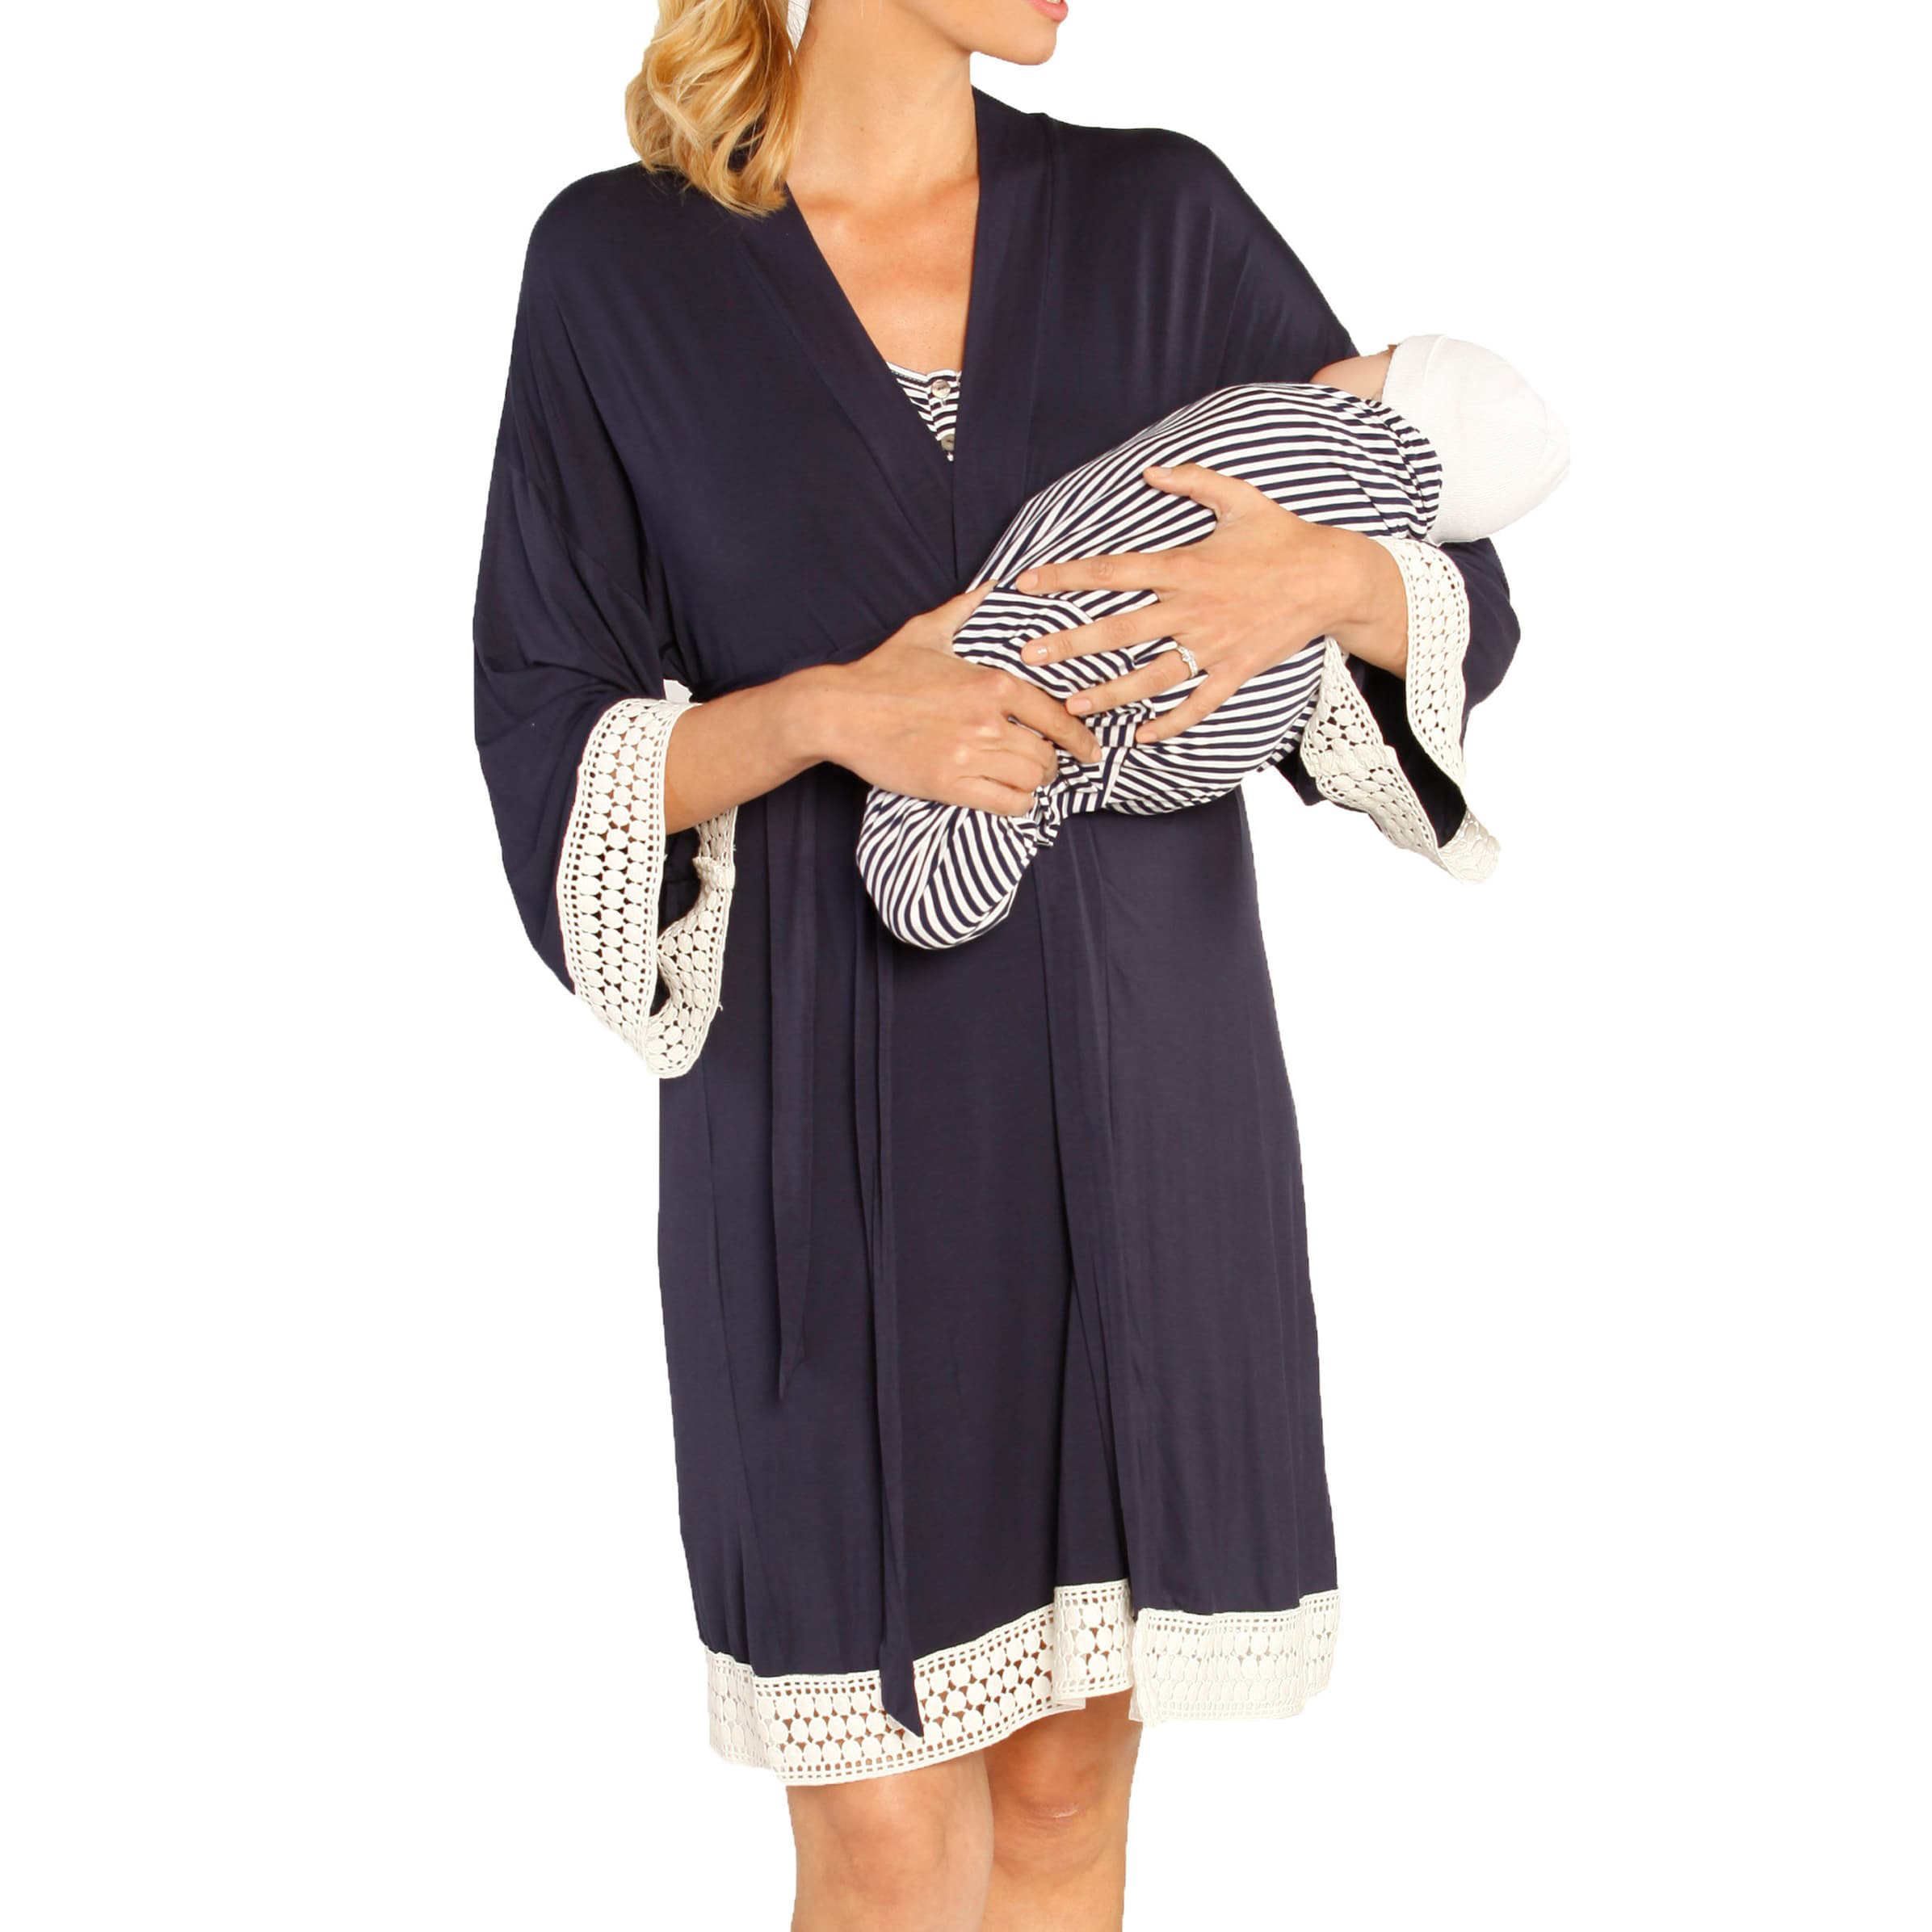 Angel Maternity Nursing Dress, Robe & Baby Blanket Set